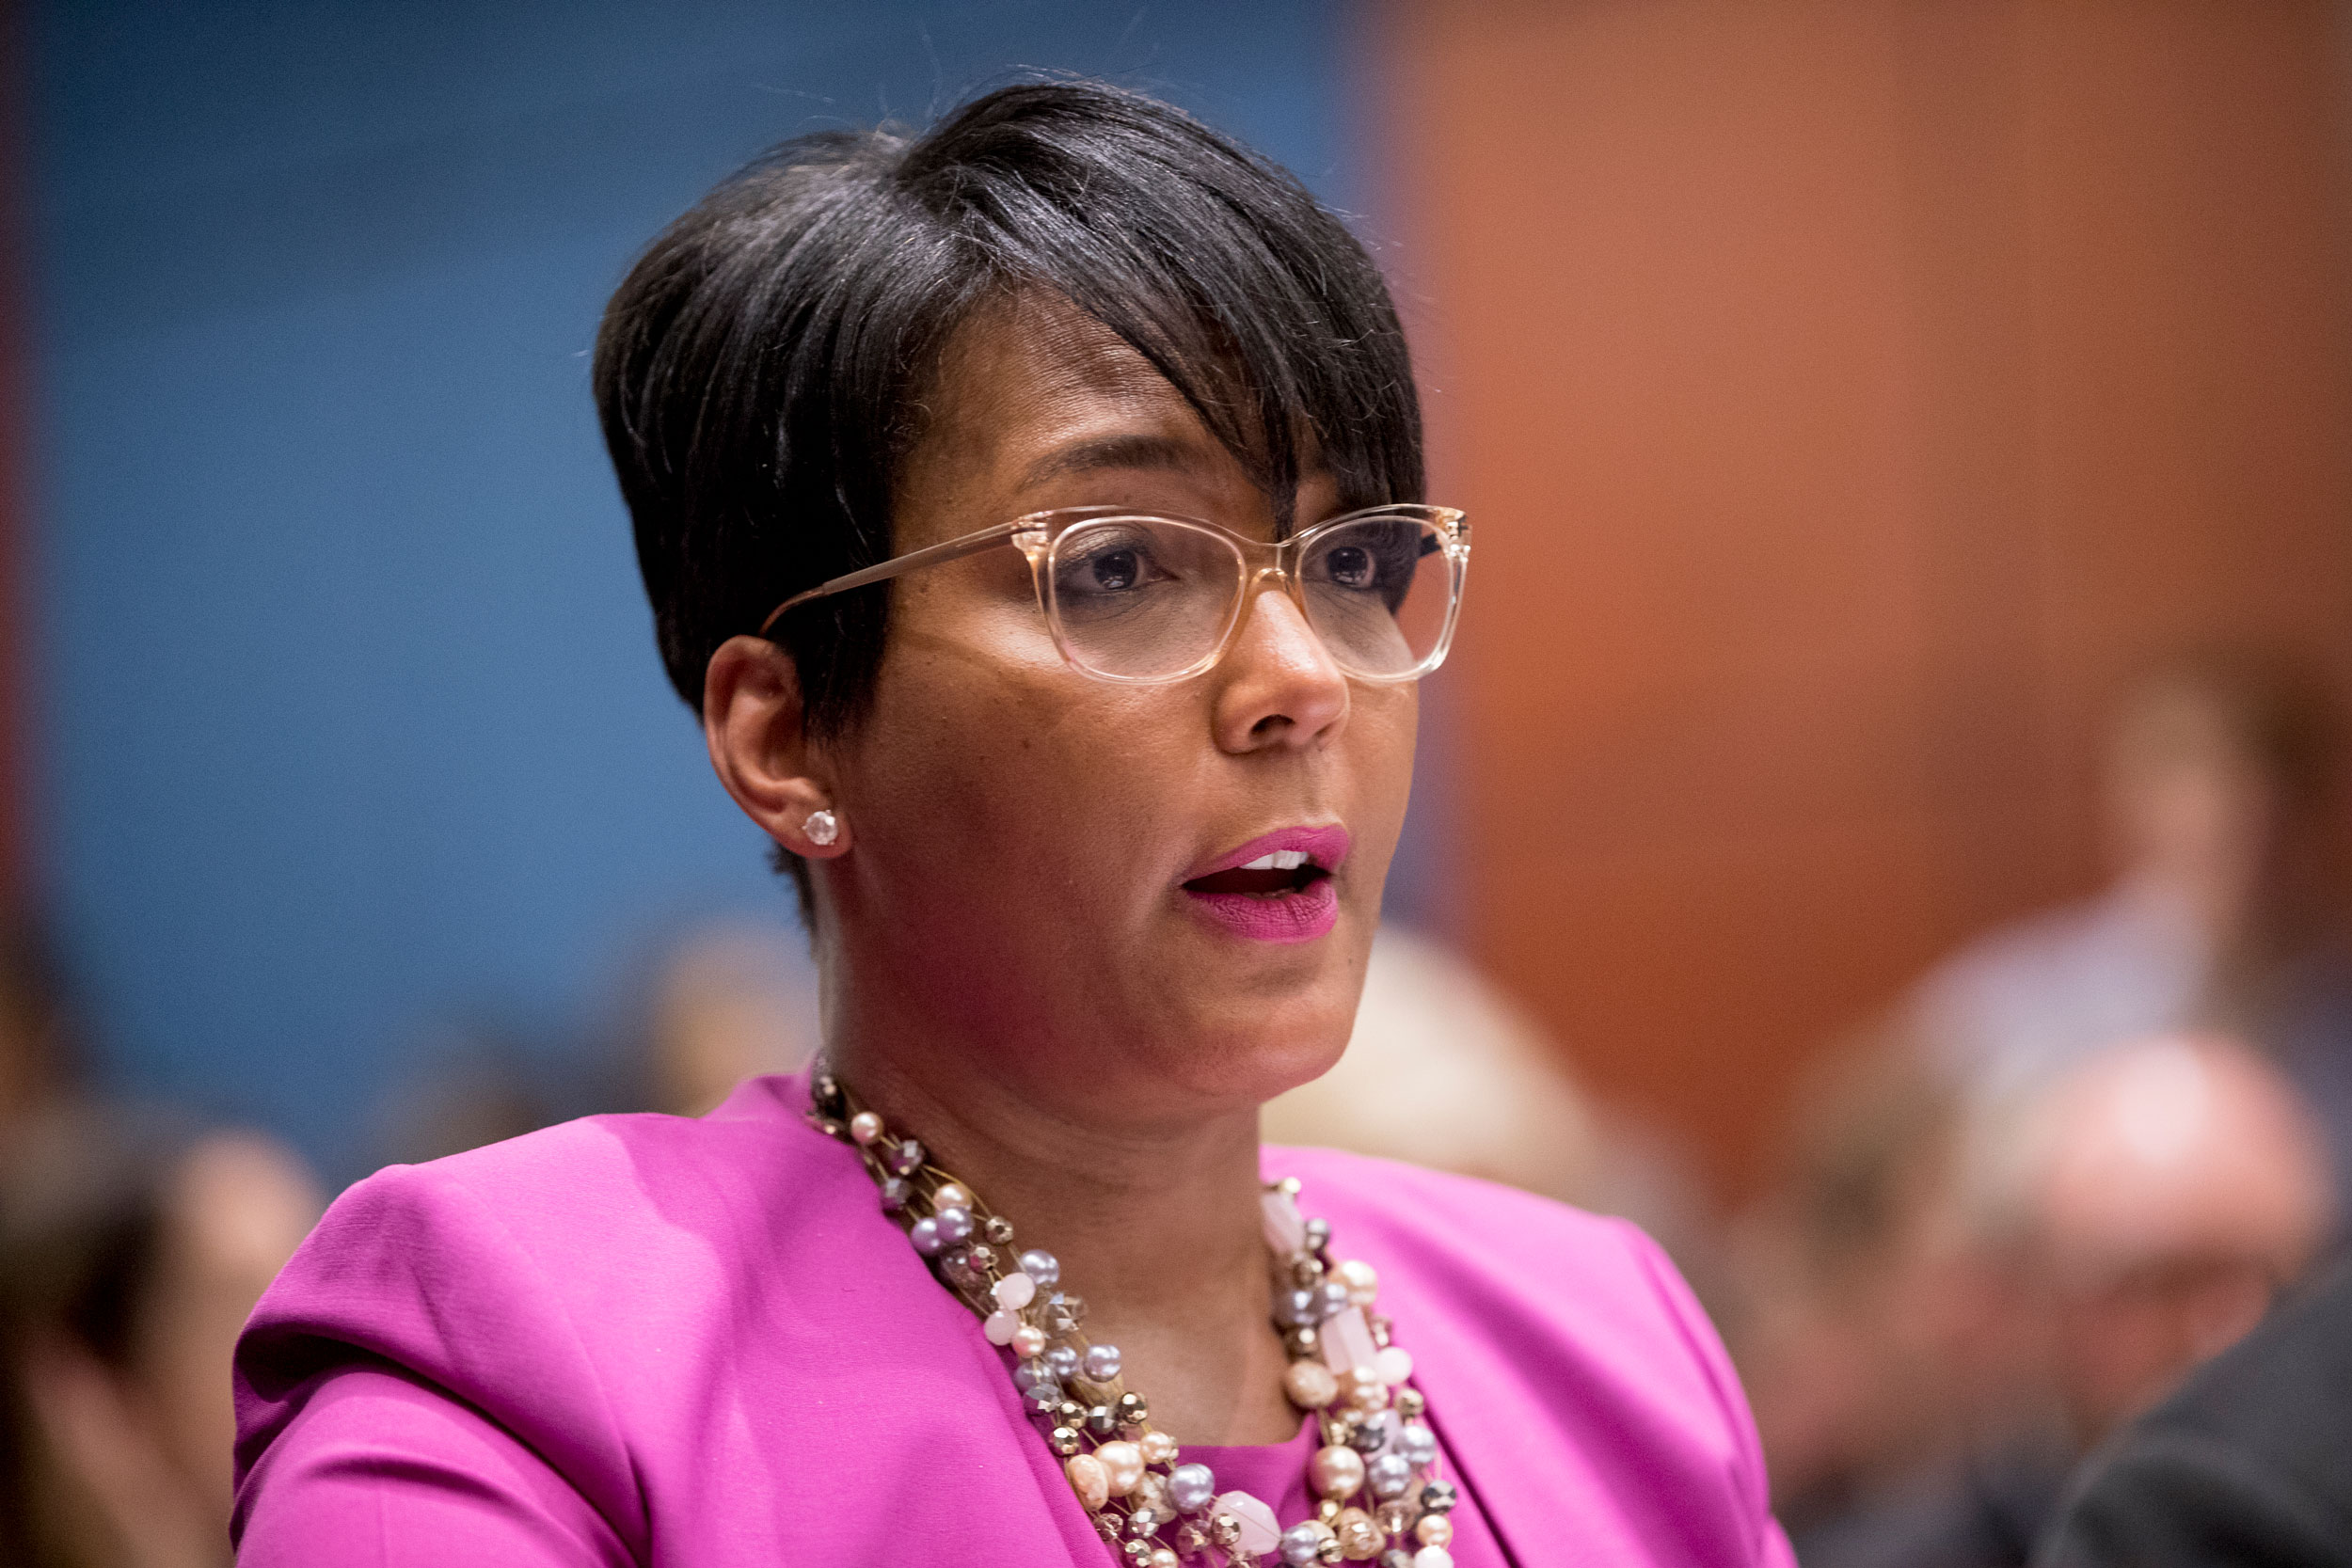 Atlanta Mayor Keisha Lance Bottoms speaks during a Senate Democrats' Special Committee on the Climate Crisis on Capitol Hill in Washington, DC., on July 17, 2019.